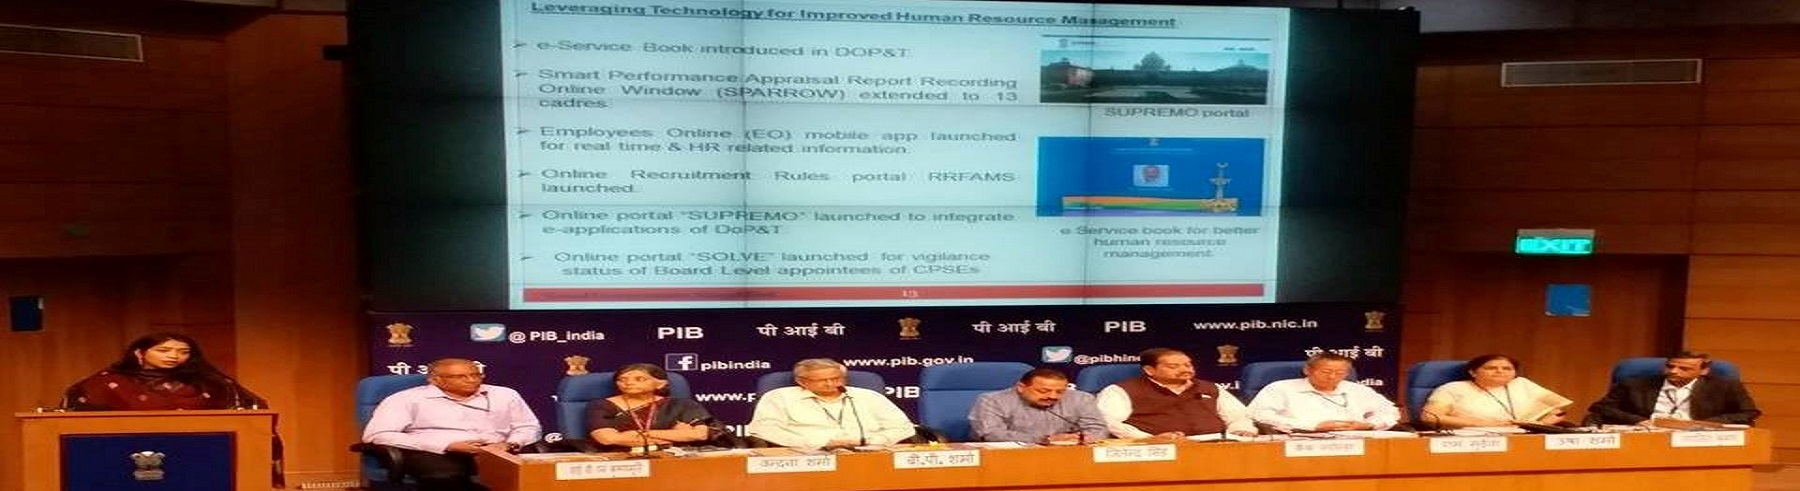 DoPT is giving a presentation on key initiatives during the three year of the Government at a press conference by MoS (PP)